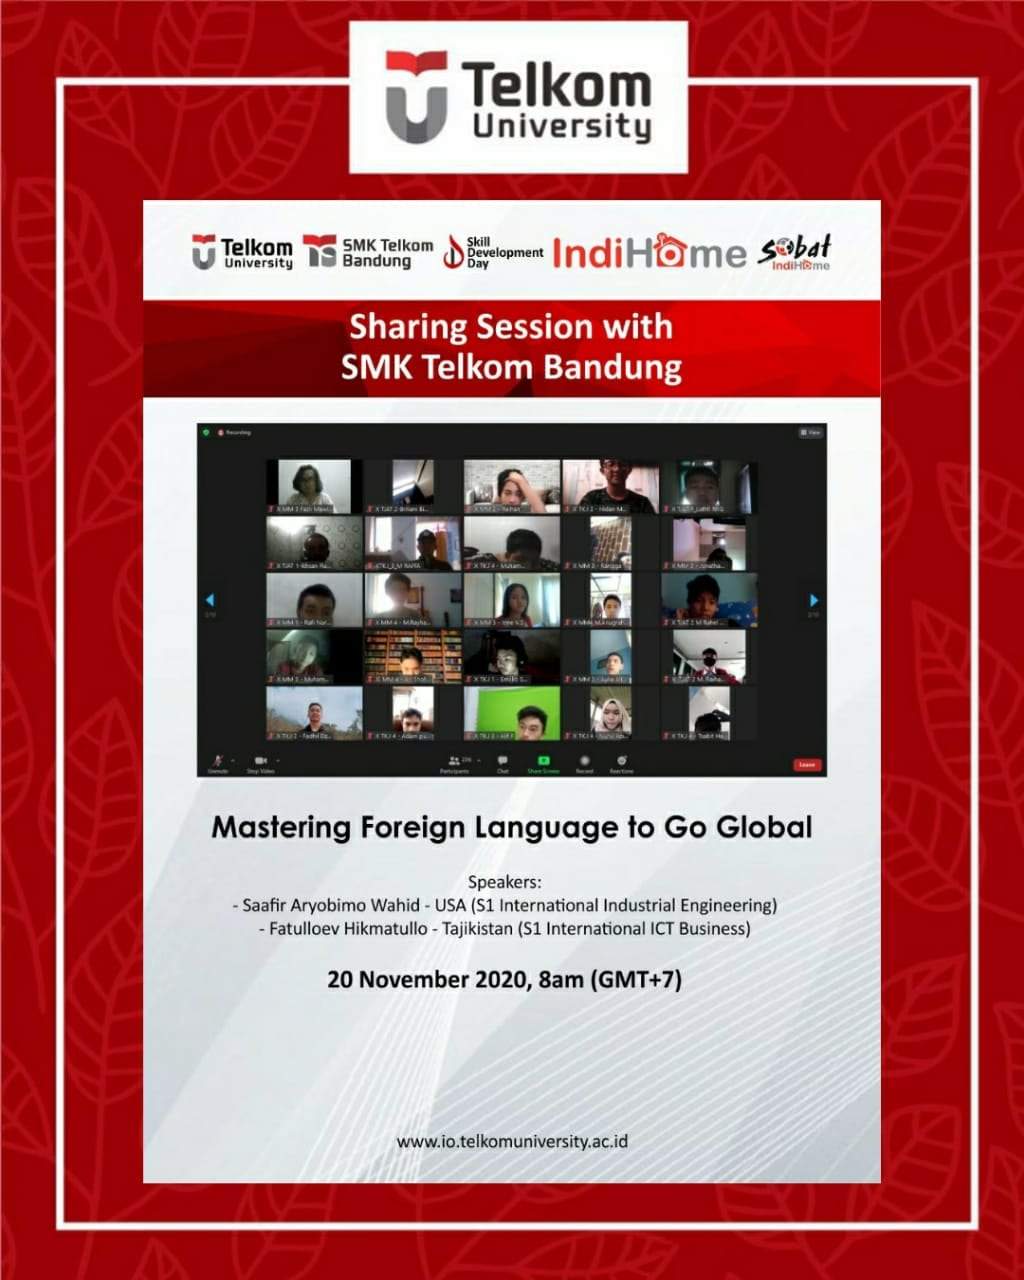 Mastering Foreign Language to Go Global, Sharing Session with SMK Telkom Bandung